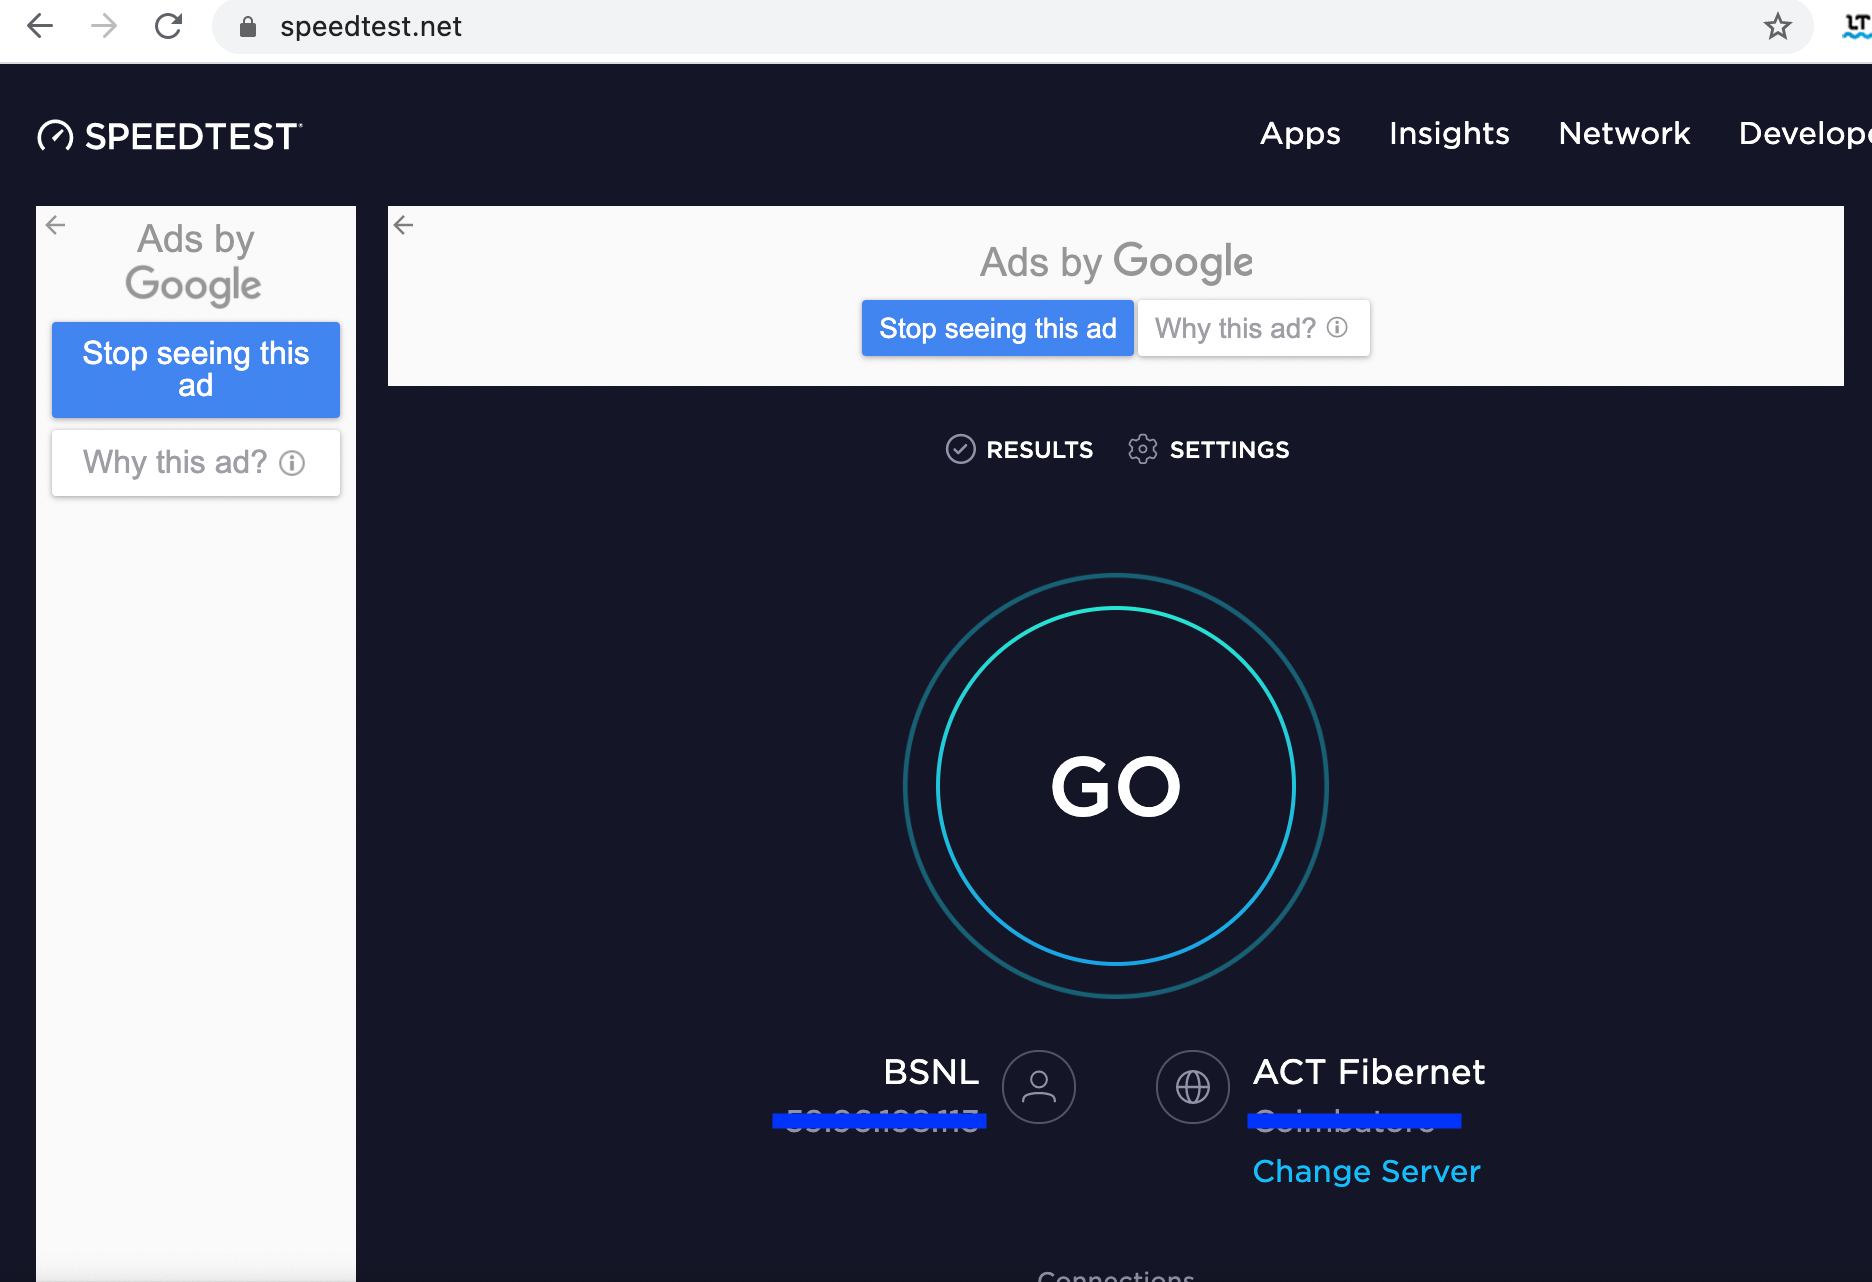 Run a quick internet speed test on speedtest.net to check the strength of your connection